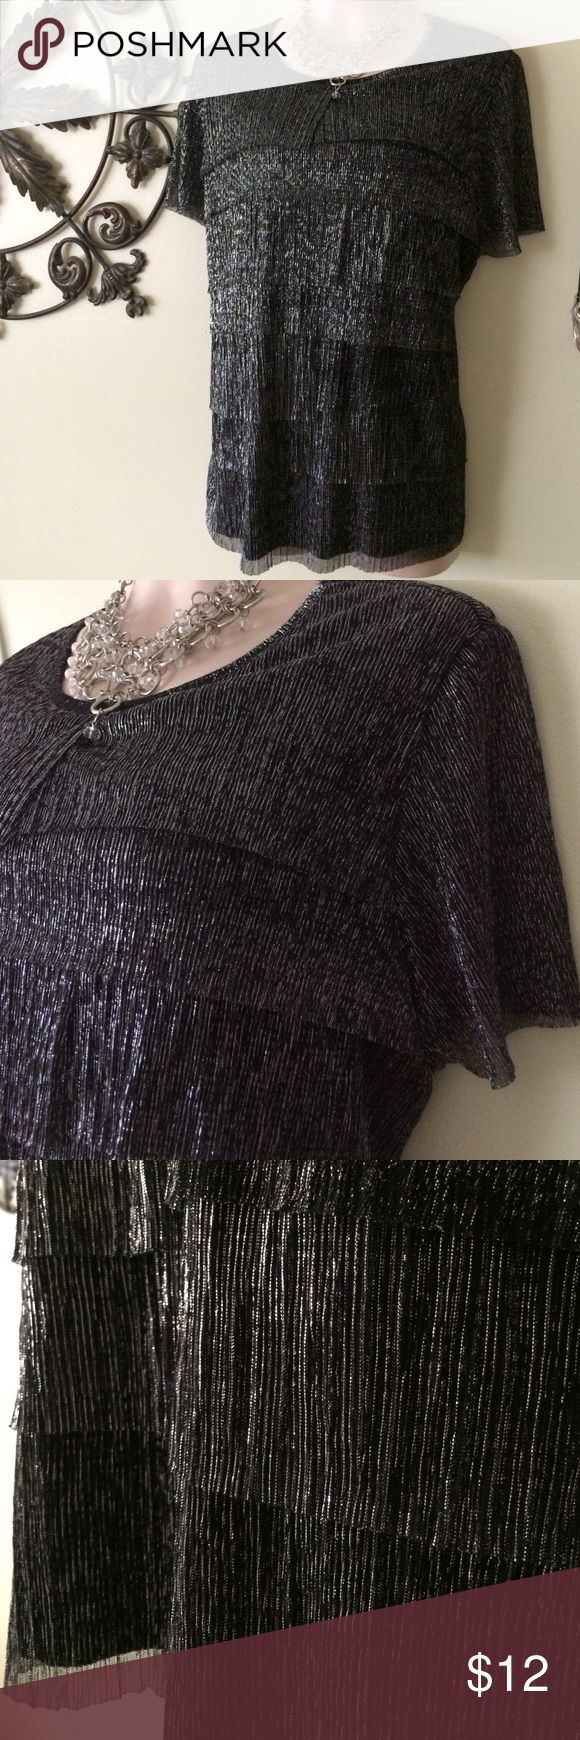 Alfred Dunner Top Beautiful black and silver short sleeve top. Fully lined except for sleeves. 100% polyester. Very sharp with black slacks or skirt.  Light weight and cool. Travels well. . Excellent condition. Alfred Dunner Tops